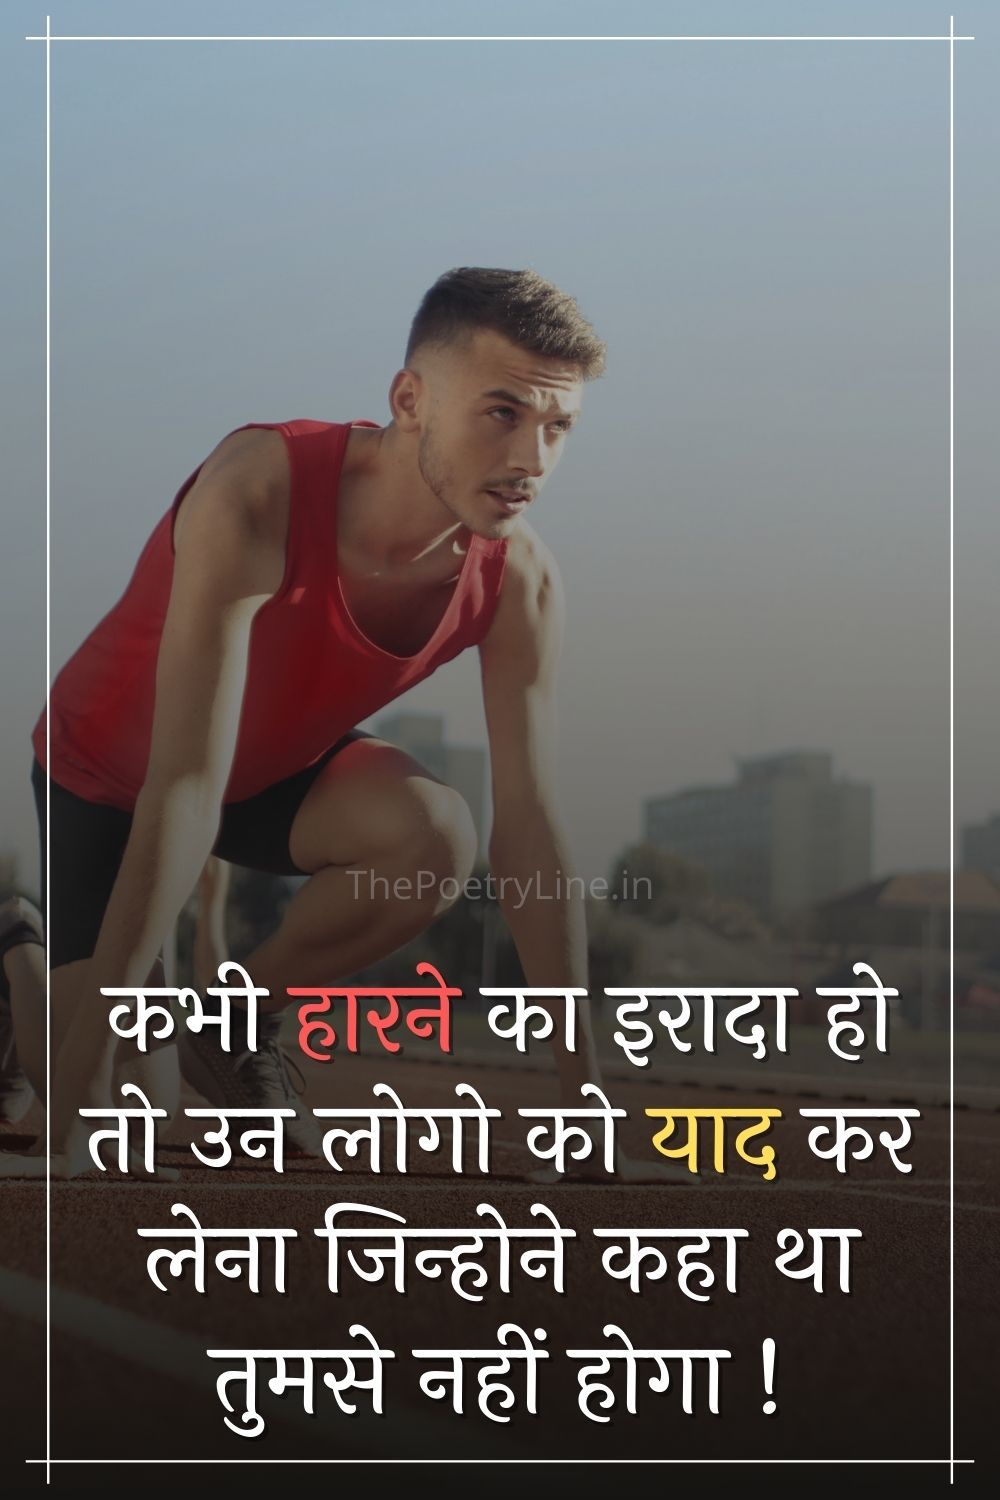 100 Hard Work Motivational Quotes In Hindi With Images In 2021 Very Inspirational Quotes Inspirational Quotes Motivation Motivational Quotes For Life